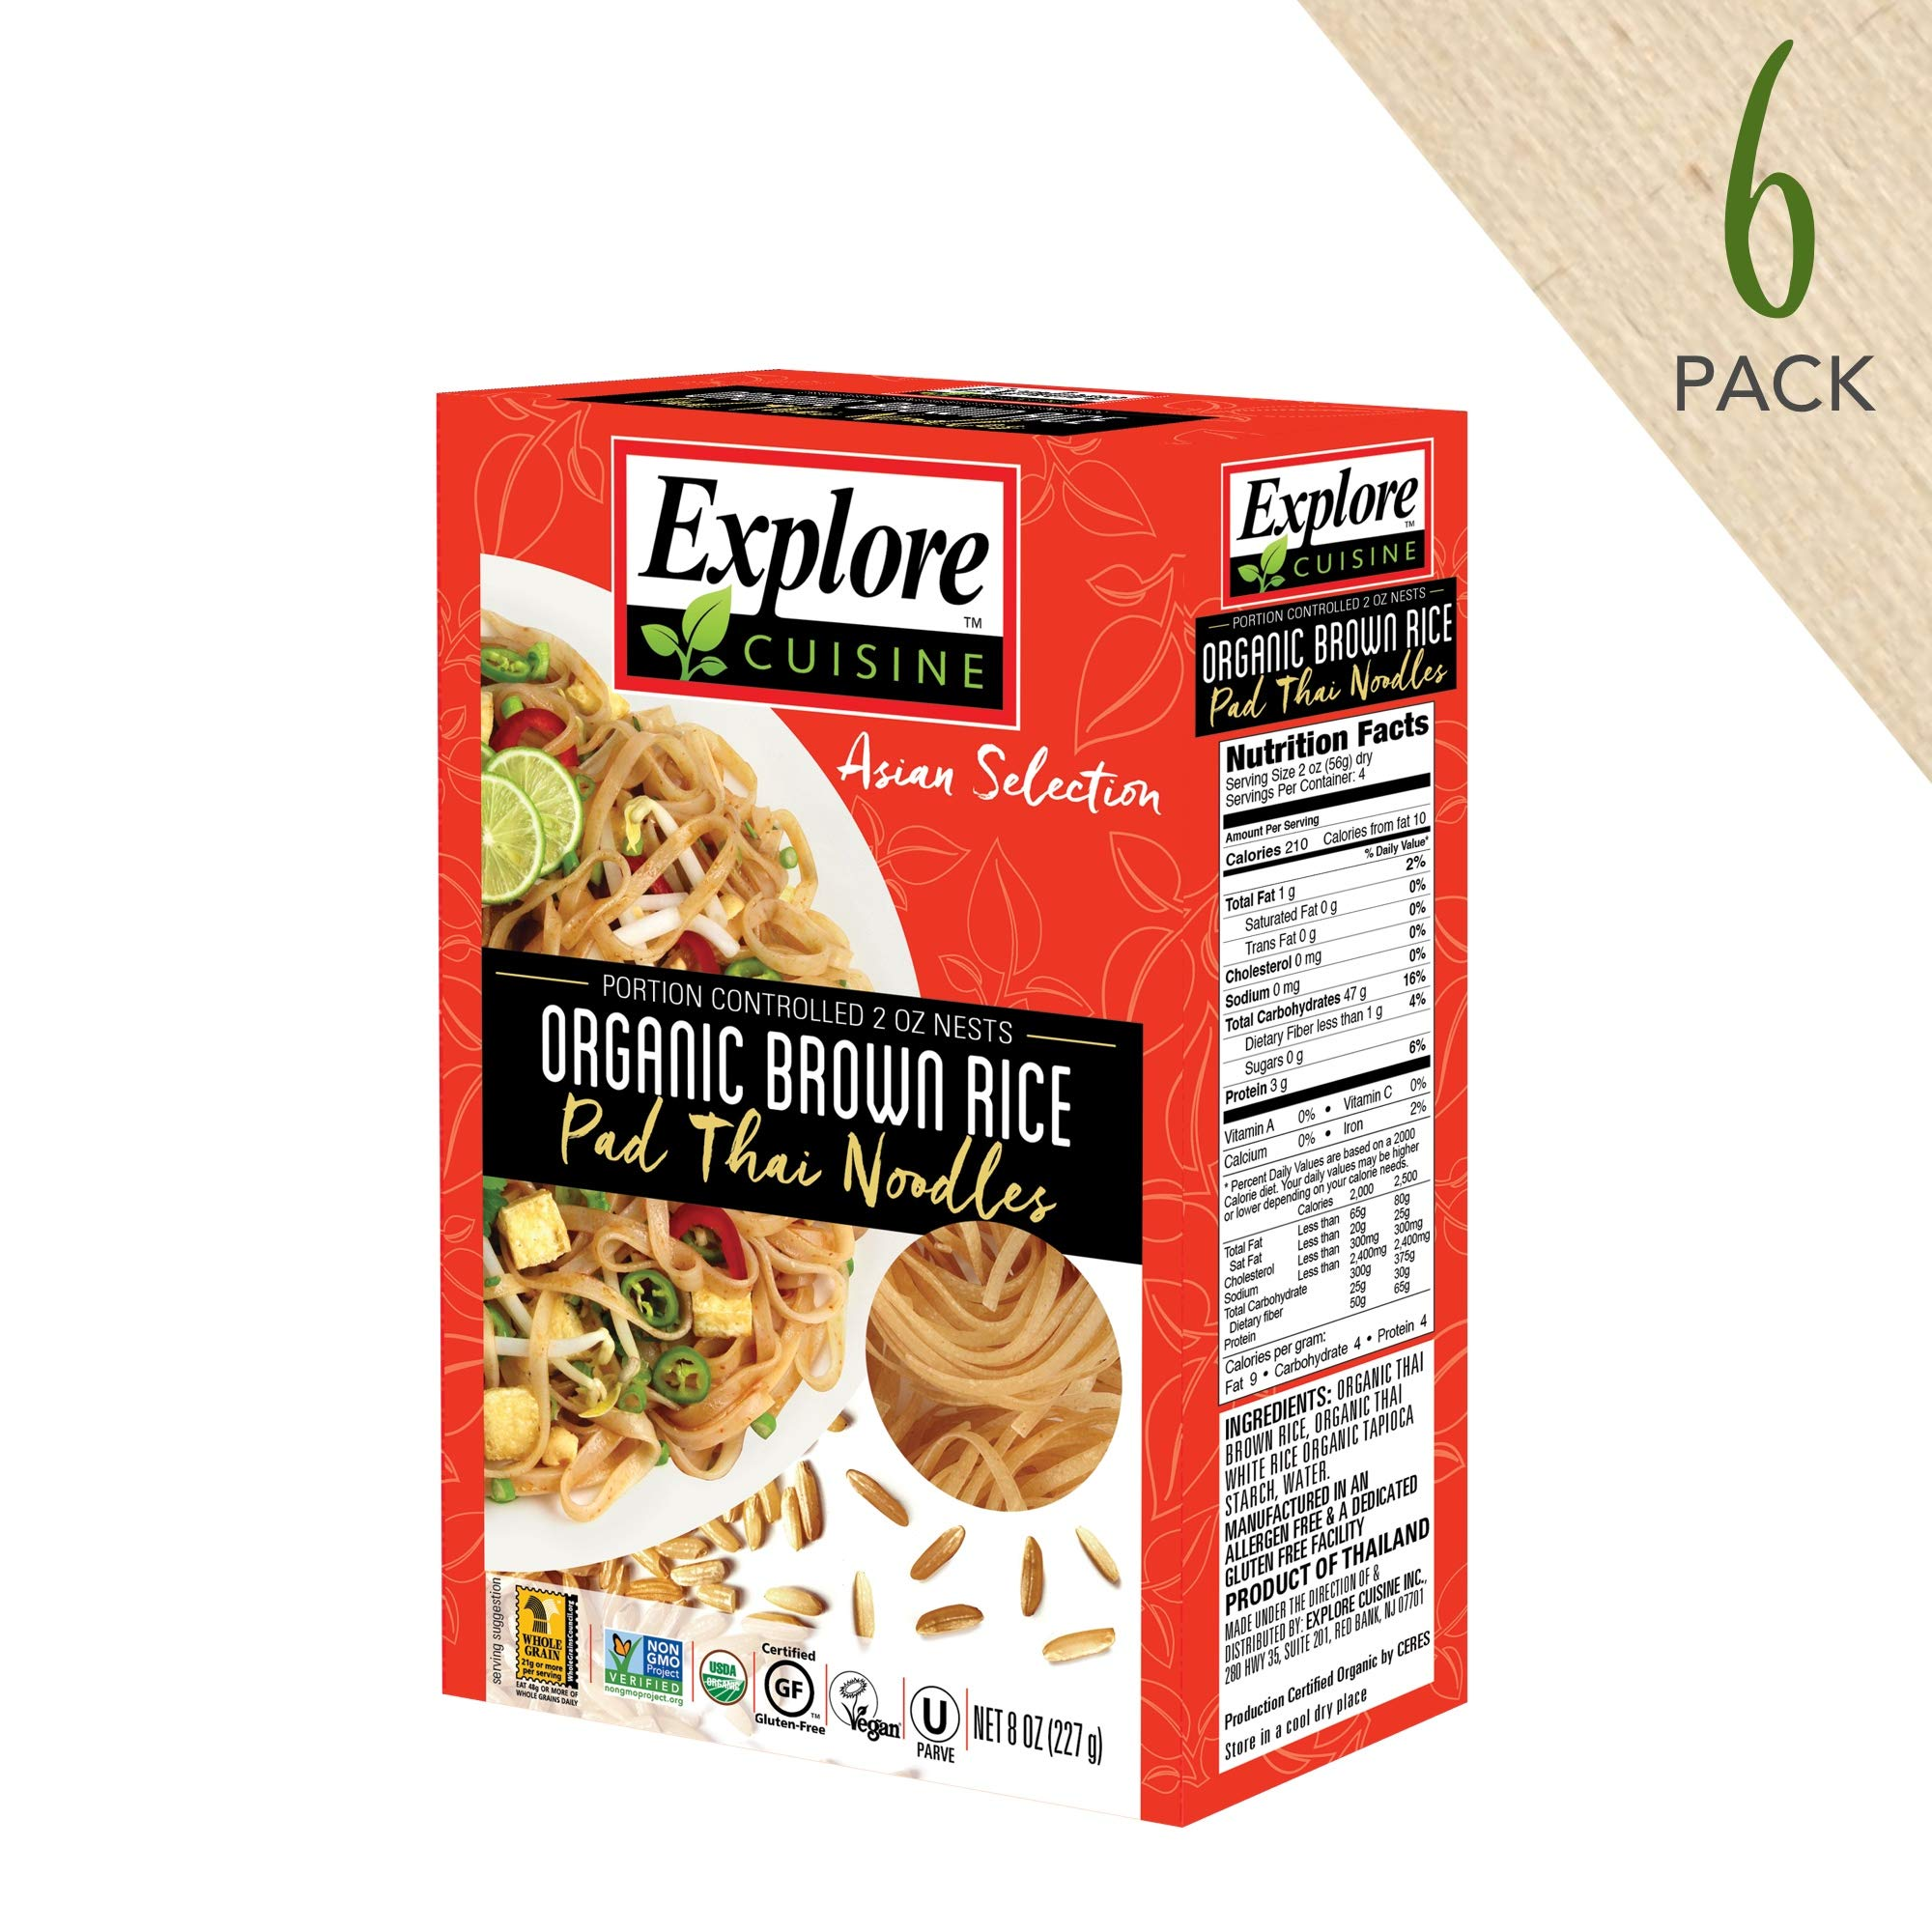 Explore Cuisine Organic Brown Rice Pad Thai Noodles (6 Pack) - 8 oz - Healthy Pasta Alternative, Gluten Free - USDA Certified Organic, Vegan, Kosher, Non GMO - 24 Total Servings